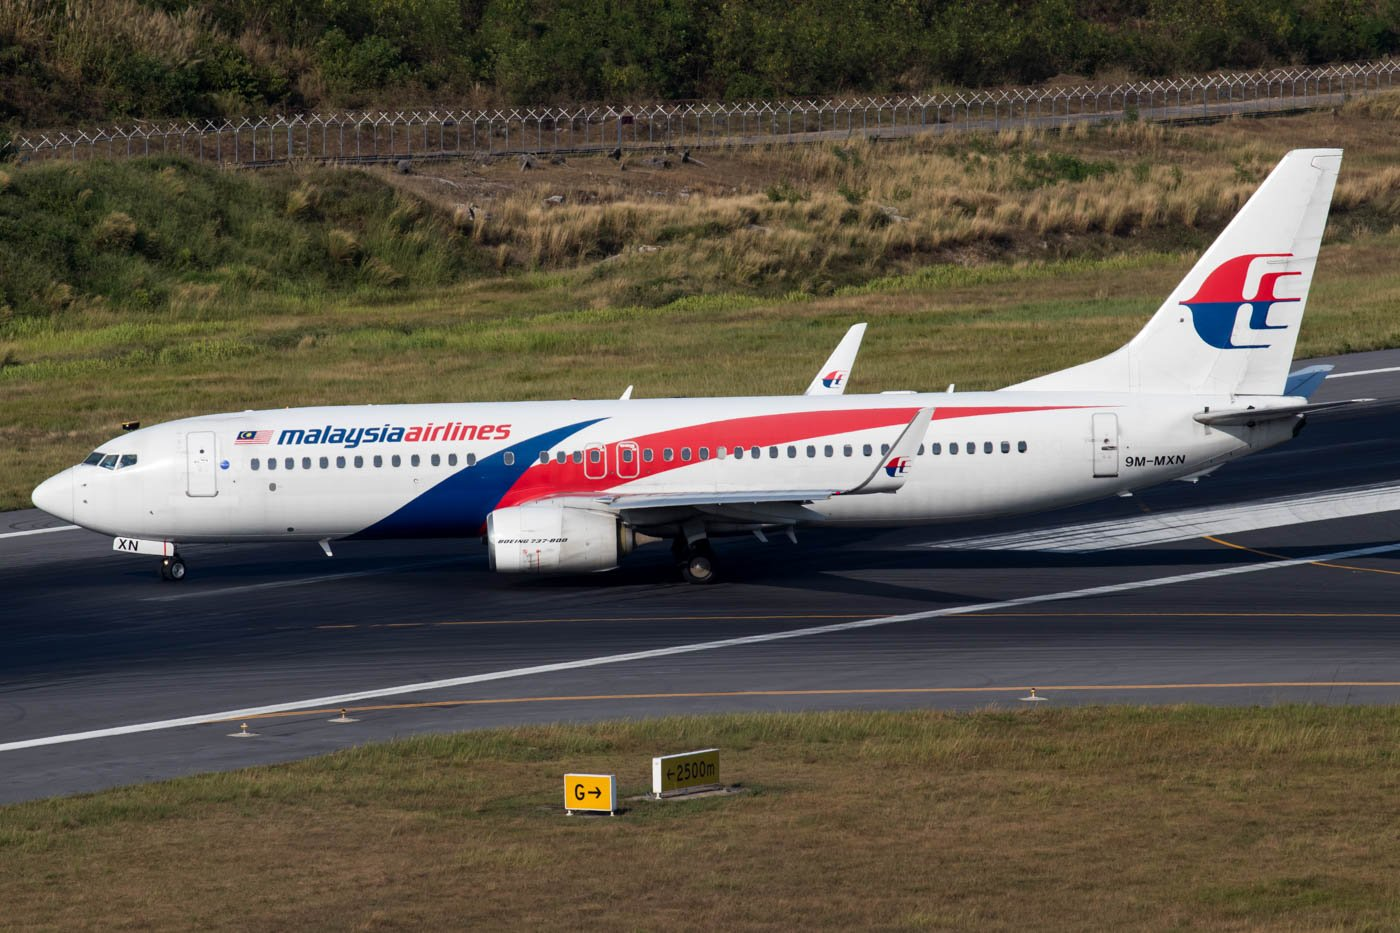 Malaysia Airlines 737-800 at Phuket Airport